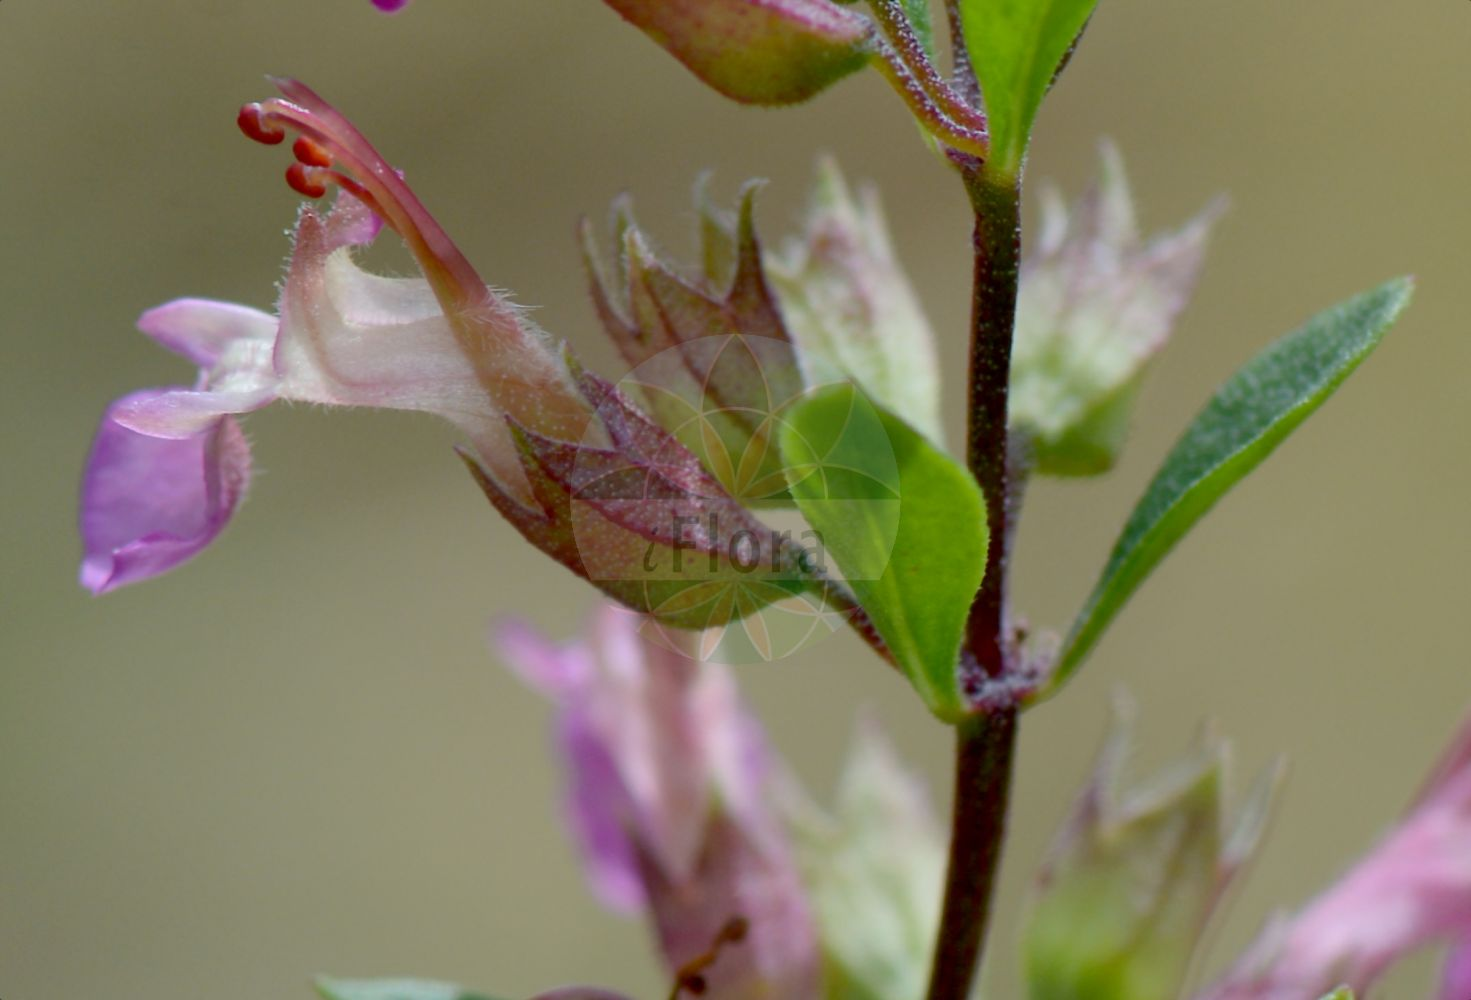 Foto von Teucrium lucidum. Das Bild zeigt Blatt und Bluete. Das Foto wurde in Genève, Schweiz aufgenommen. ---- Photo of Teucrium lucidum.The image is showing leaf and flower.The picture was taken in Geneva, Switzerland.(Teucrium lucidum,Chamaedrys lucida,,Teucrium,Gamander,Germander,Lamiaceae,Lippenbluetengewaechse;Lippenbluetler,Nettle family,Blatt,Bluete,leaf,flower)